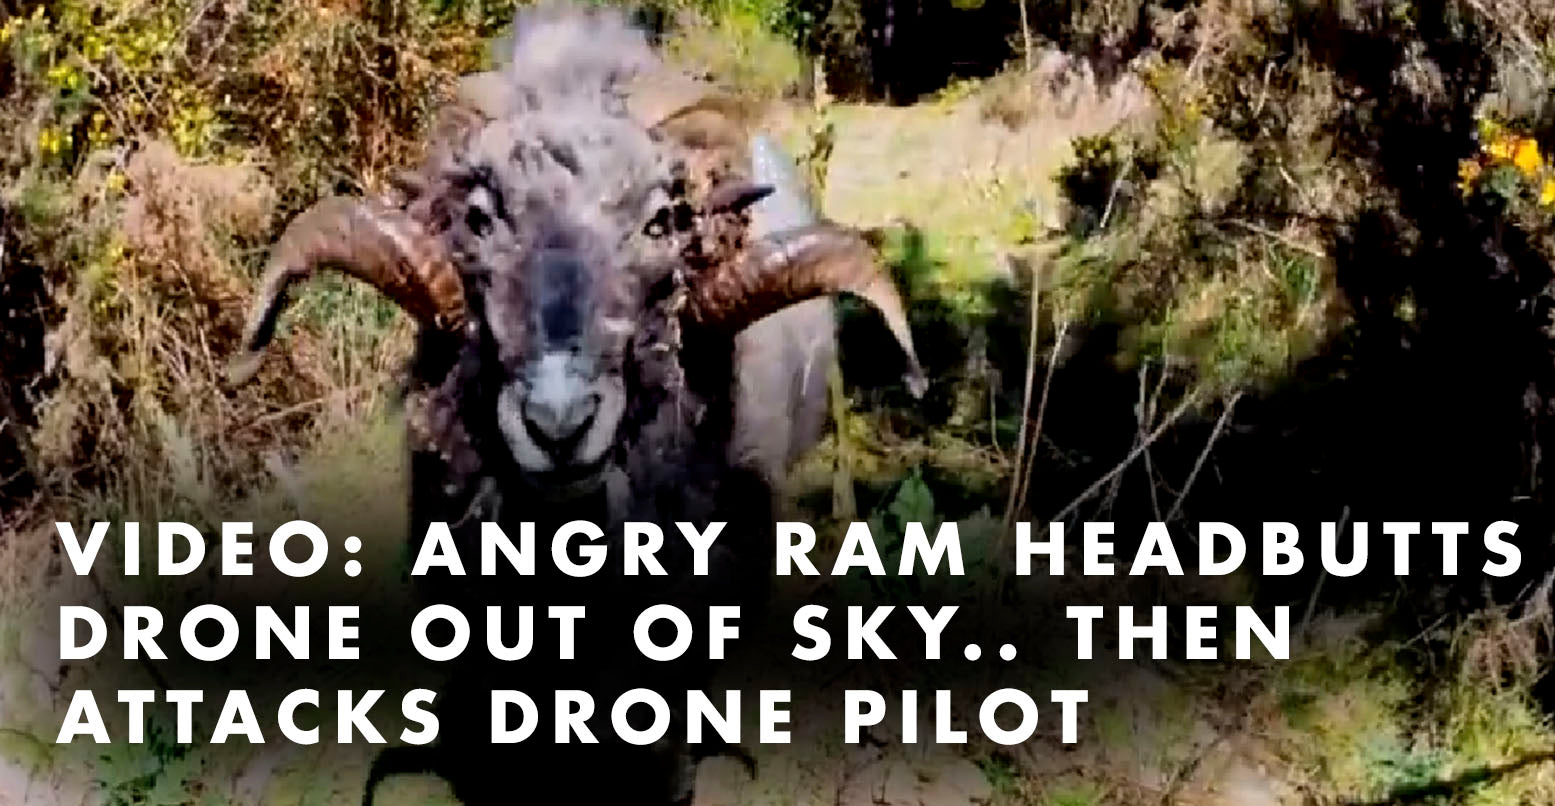 VIDEO: Angry Ram Headbutts Drone Out of Sky.. Then Attacks Drone Pilot